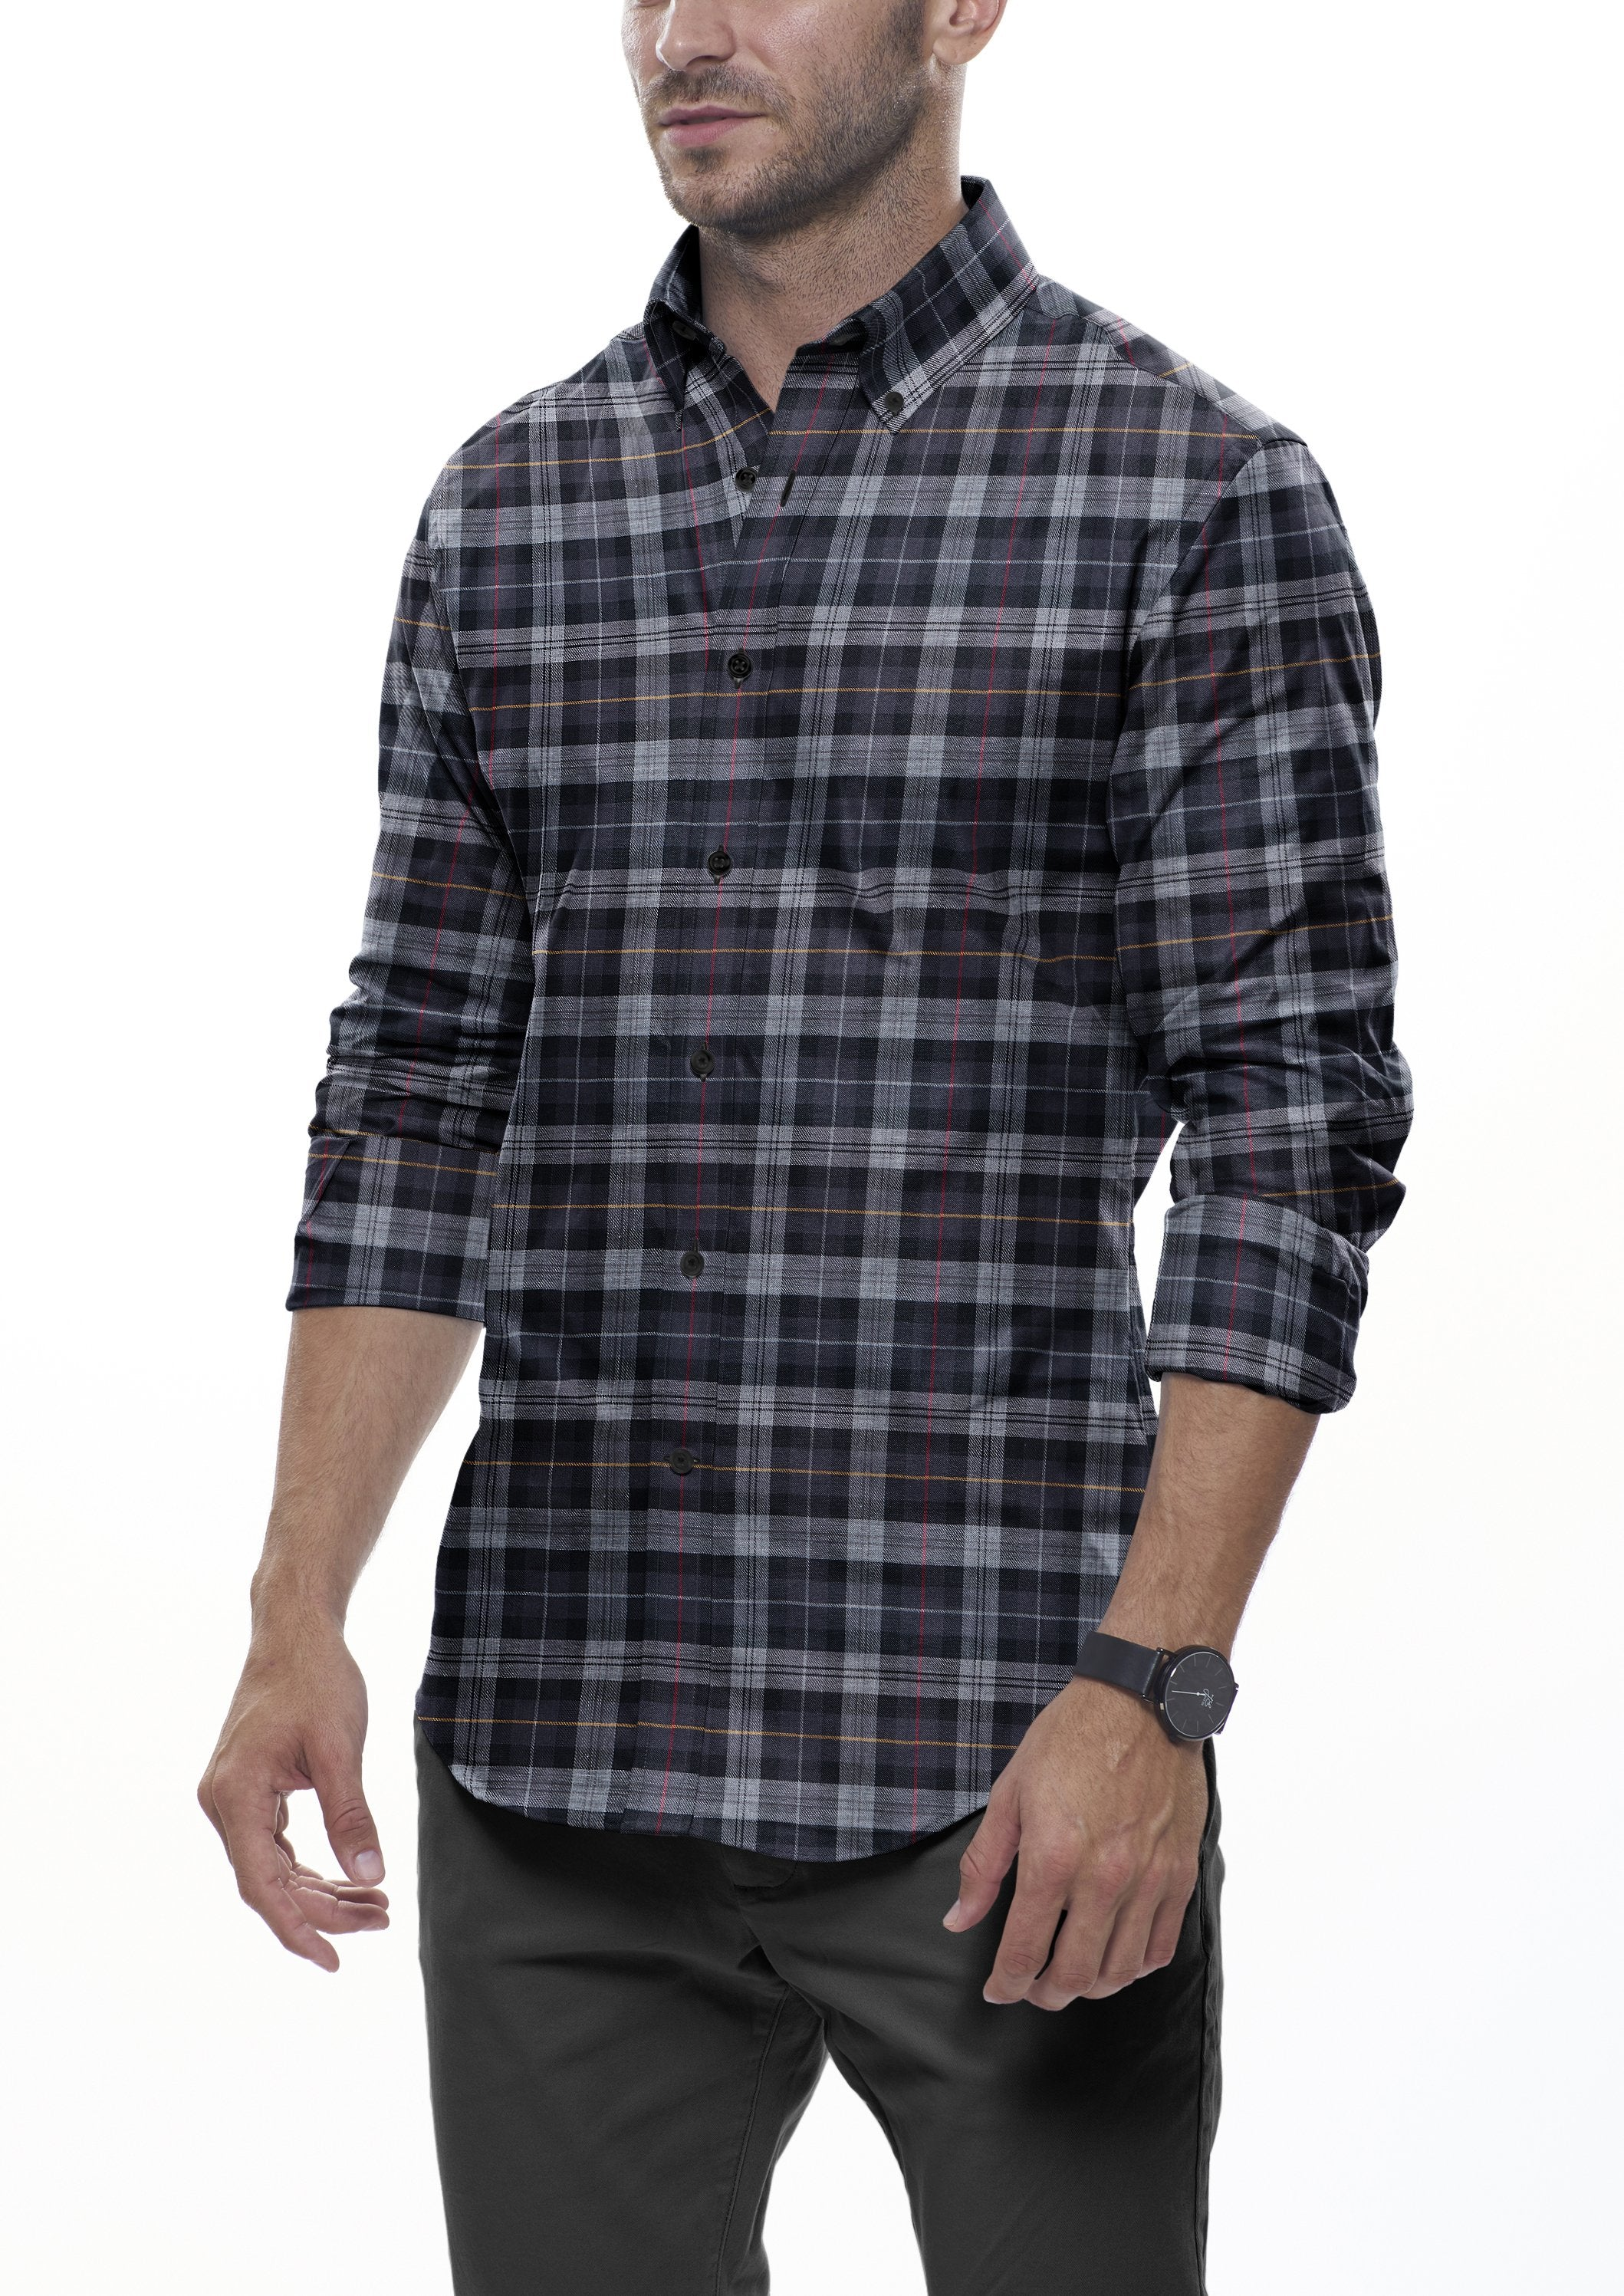 Black Tartan Flannel: Semi-Spread Collar, Barrel Cuff